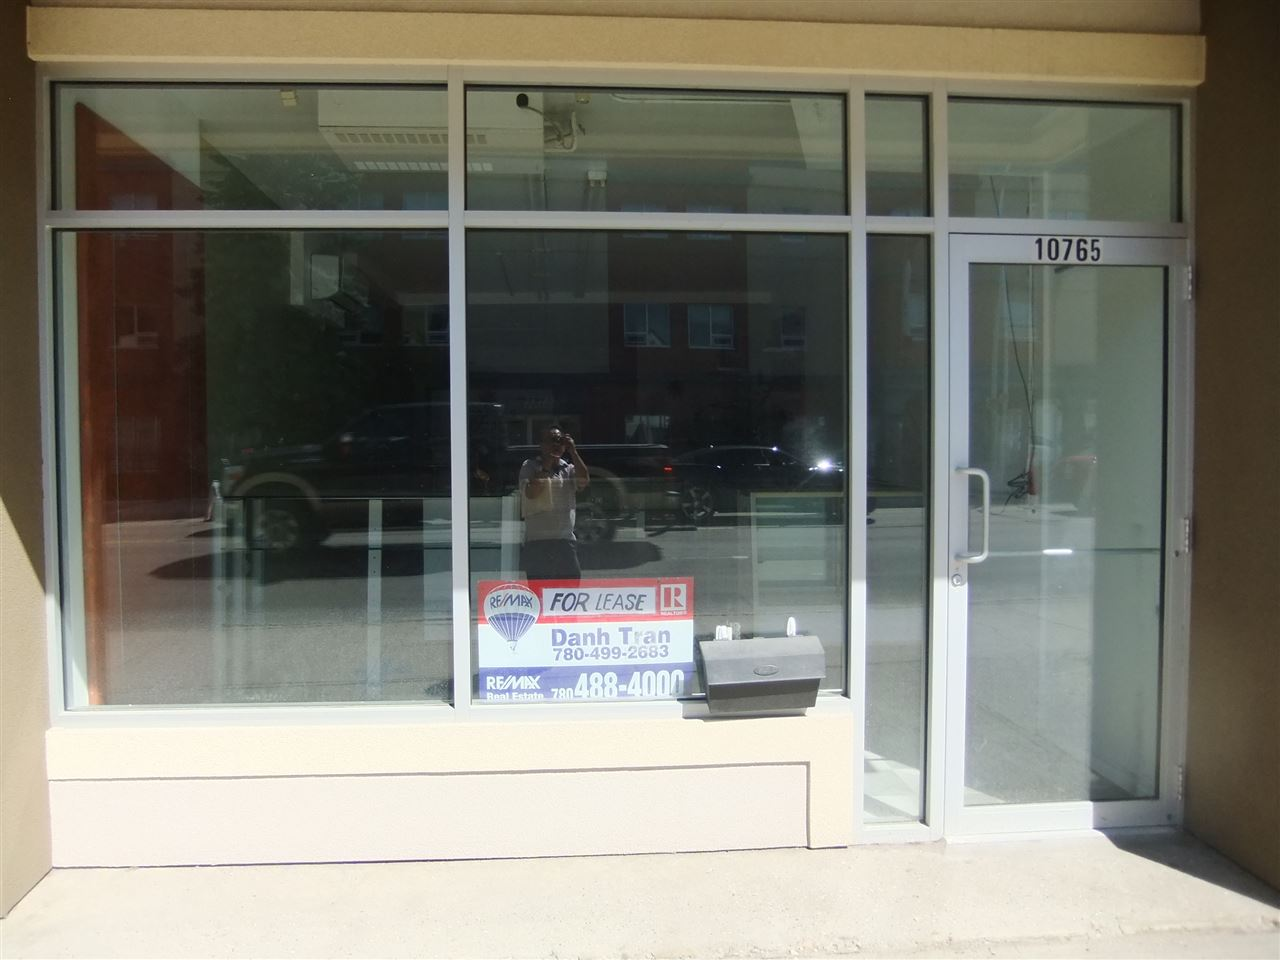 690 sq ft retail for lease in Vietnam & Chinatown, half bath, with single heated attached garage. Attractive rent at $1500 which includes heat, water, property tax, building insurance, garbage & snow removal.